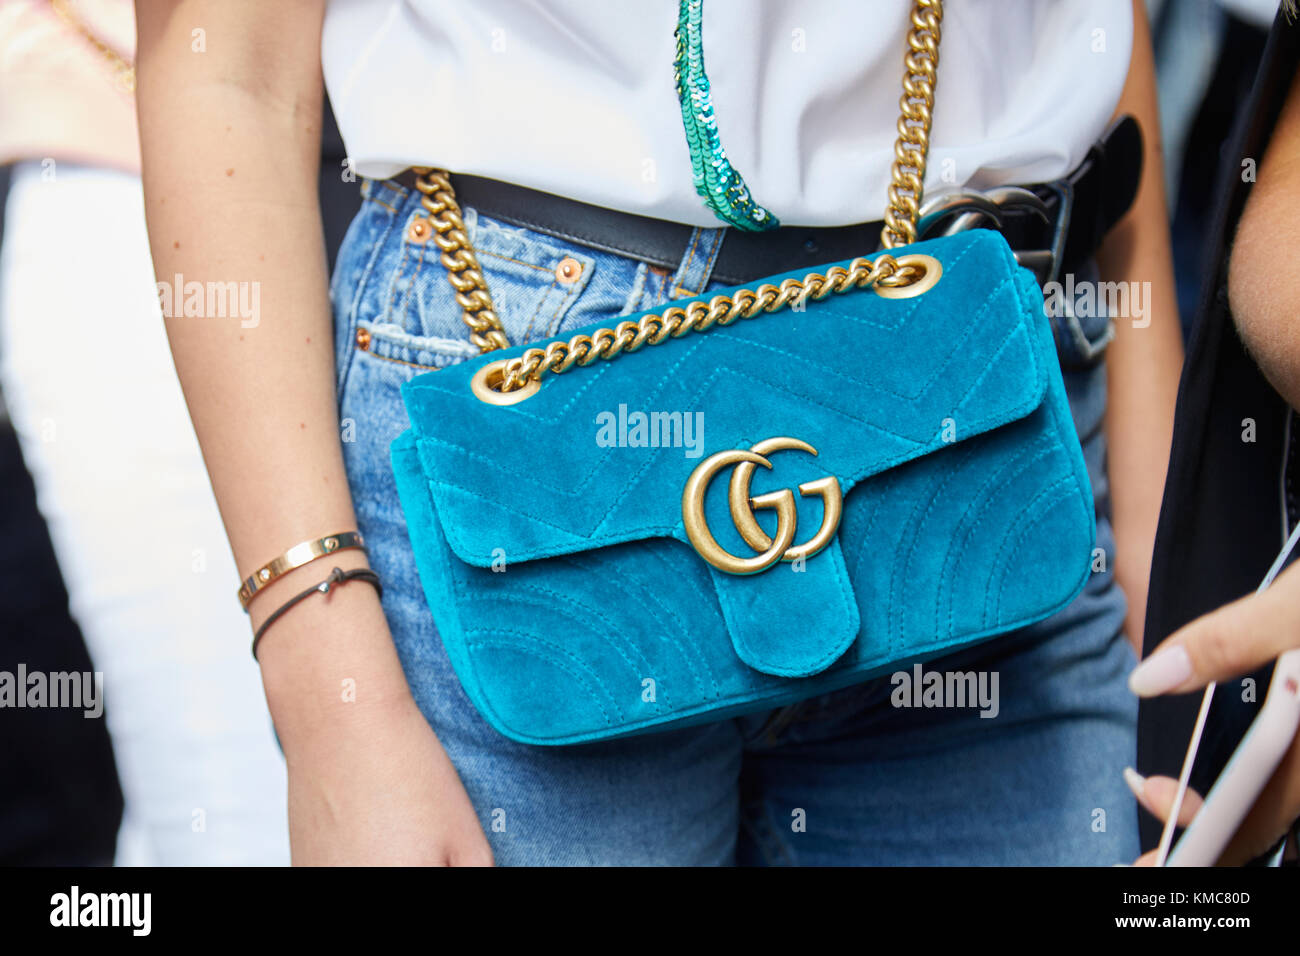 Milan - 23 septembre   woman with light blue velvet gucci sac avec chaîne  d or avant d Ermanno scervino fashion show, Milan Fashion week street style  o 0ade96942ae